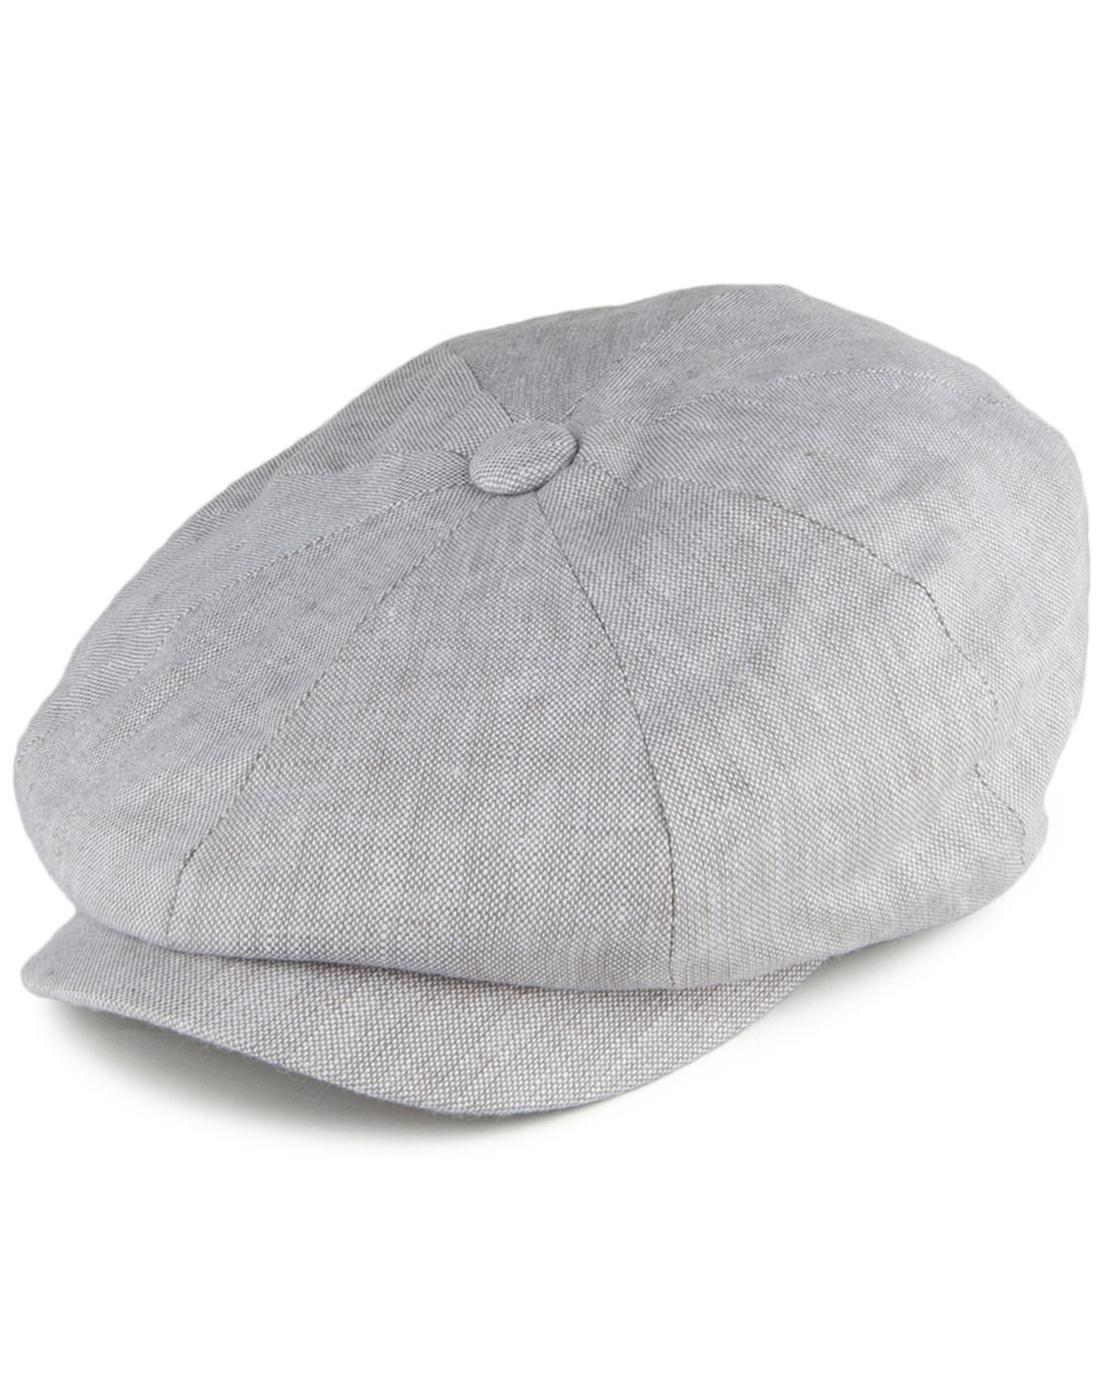 Alfie FAILSWORTH Irish Linen 8 Panel Gatsby Cap D